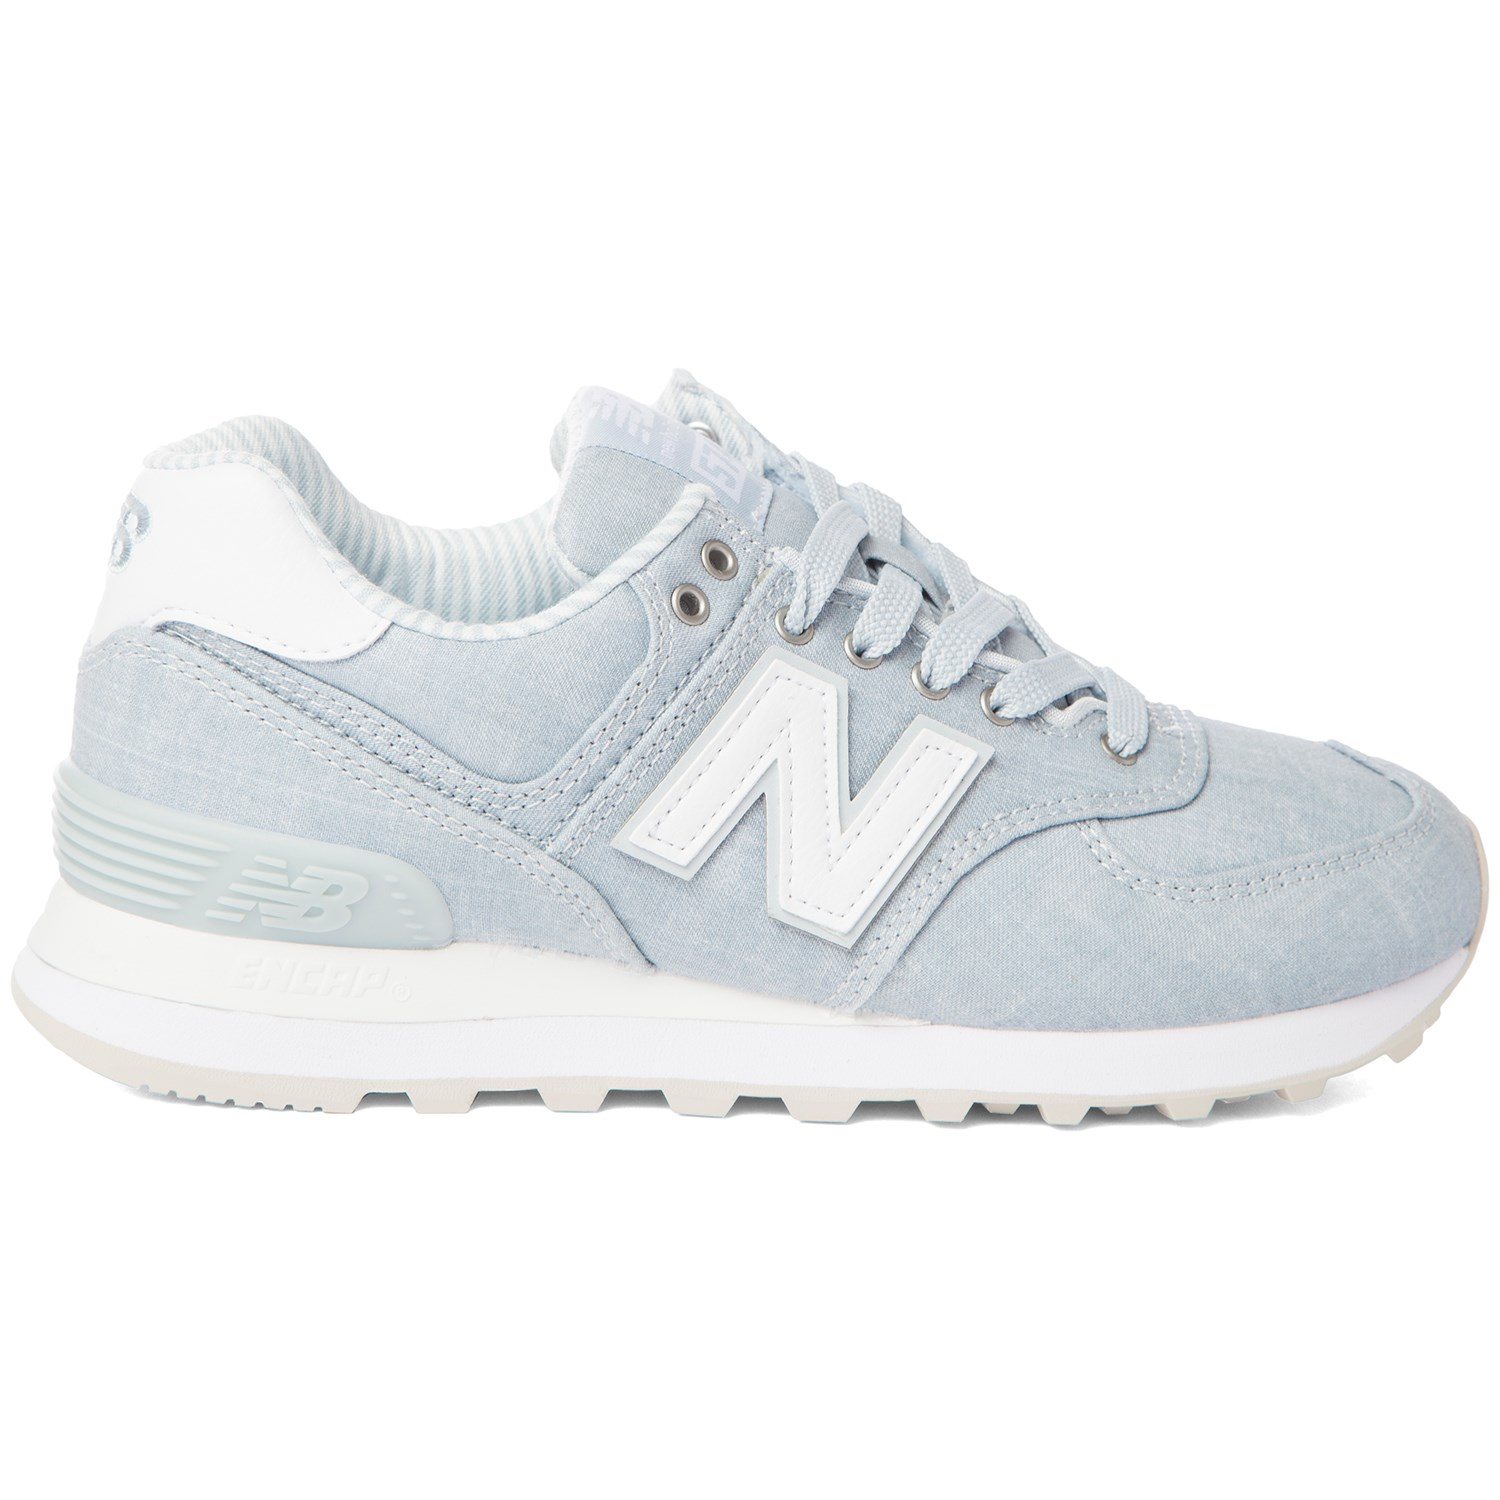 new arrival 9131d 1dfa9 New Balance 574 Beach Chambray Shoes - Women's | evo